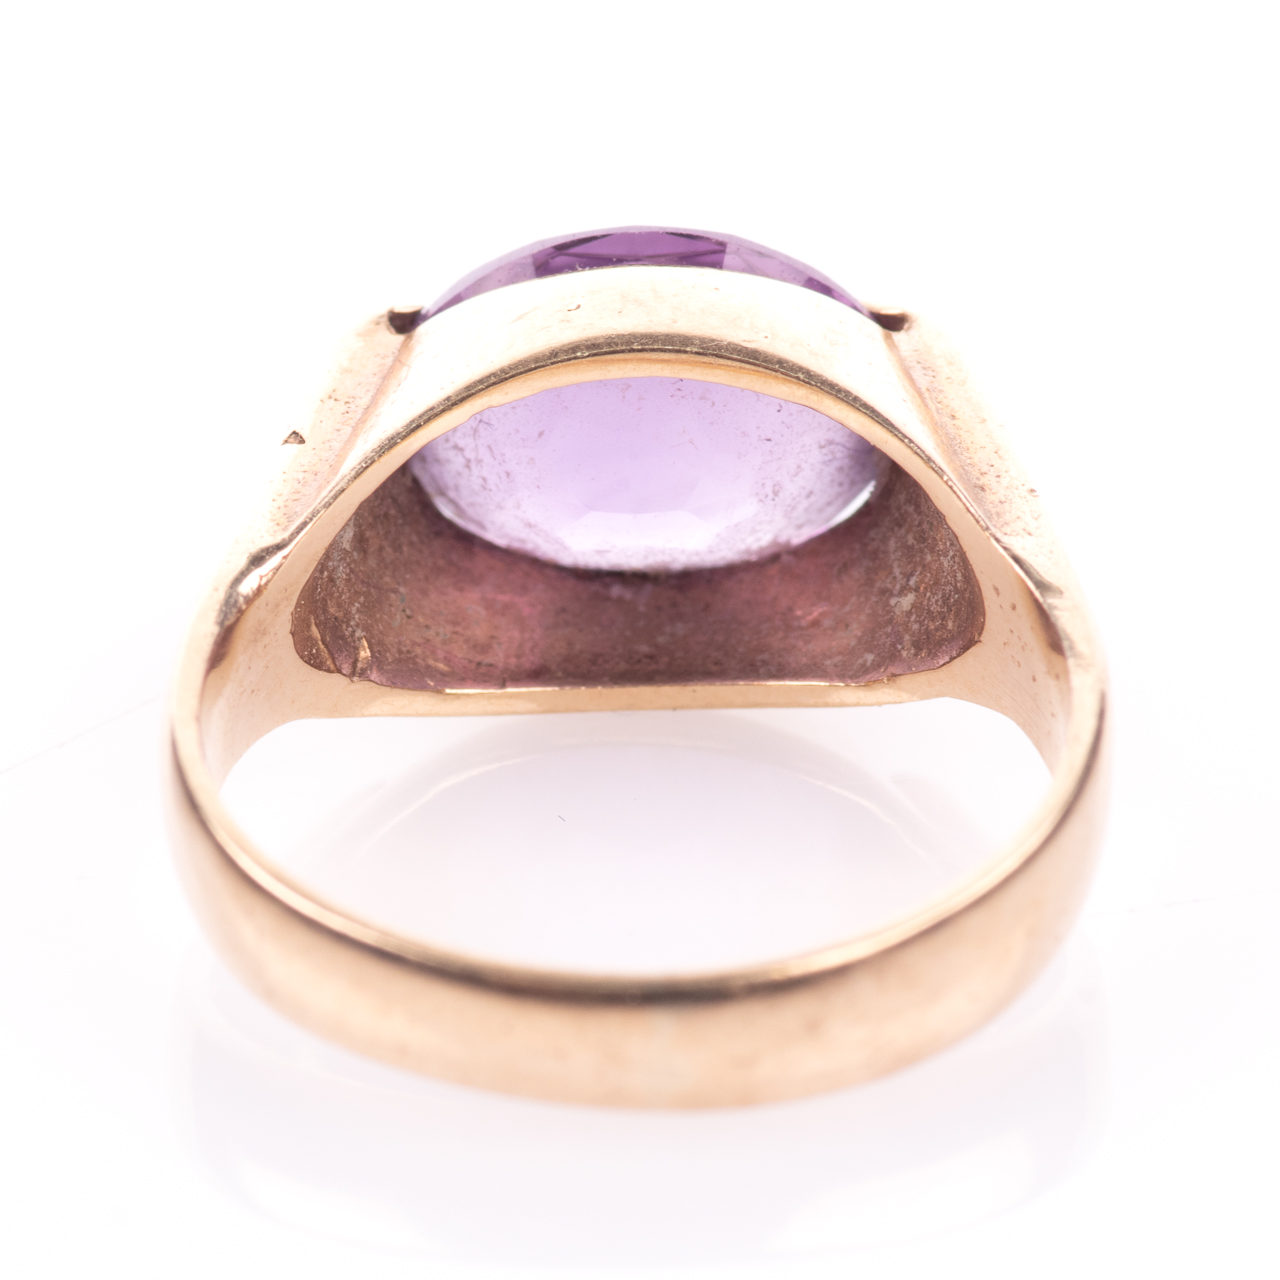 9ct Gold 3.20ct Amethyst Ring - Image 5 of 7